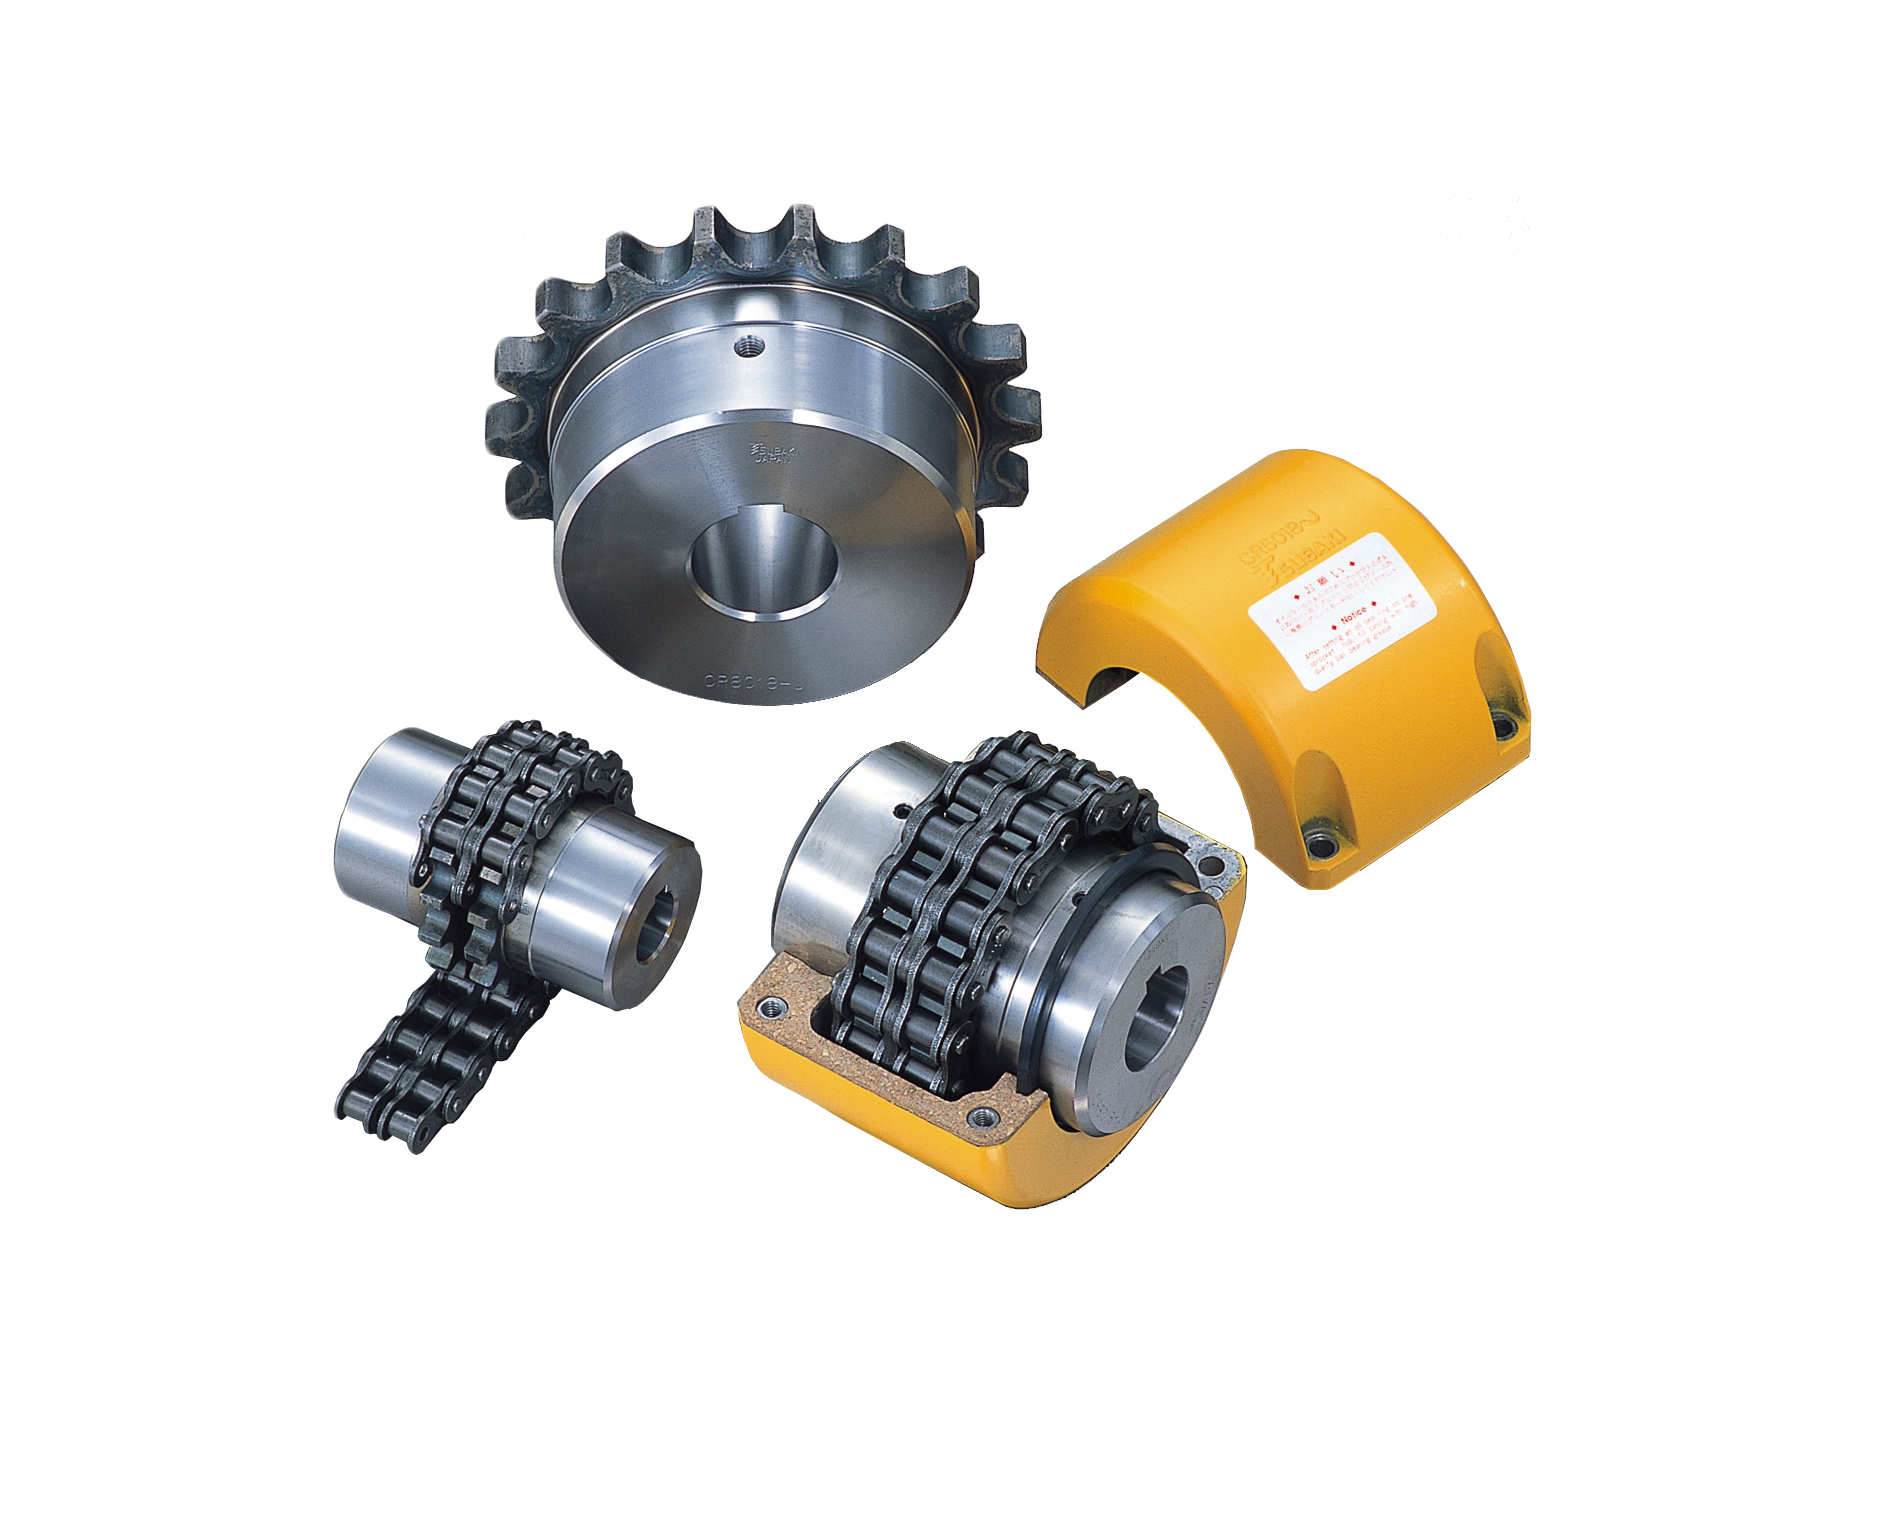 New compact Flexible Chain Couplings from Tsubaki are available with nylon and steel chain